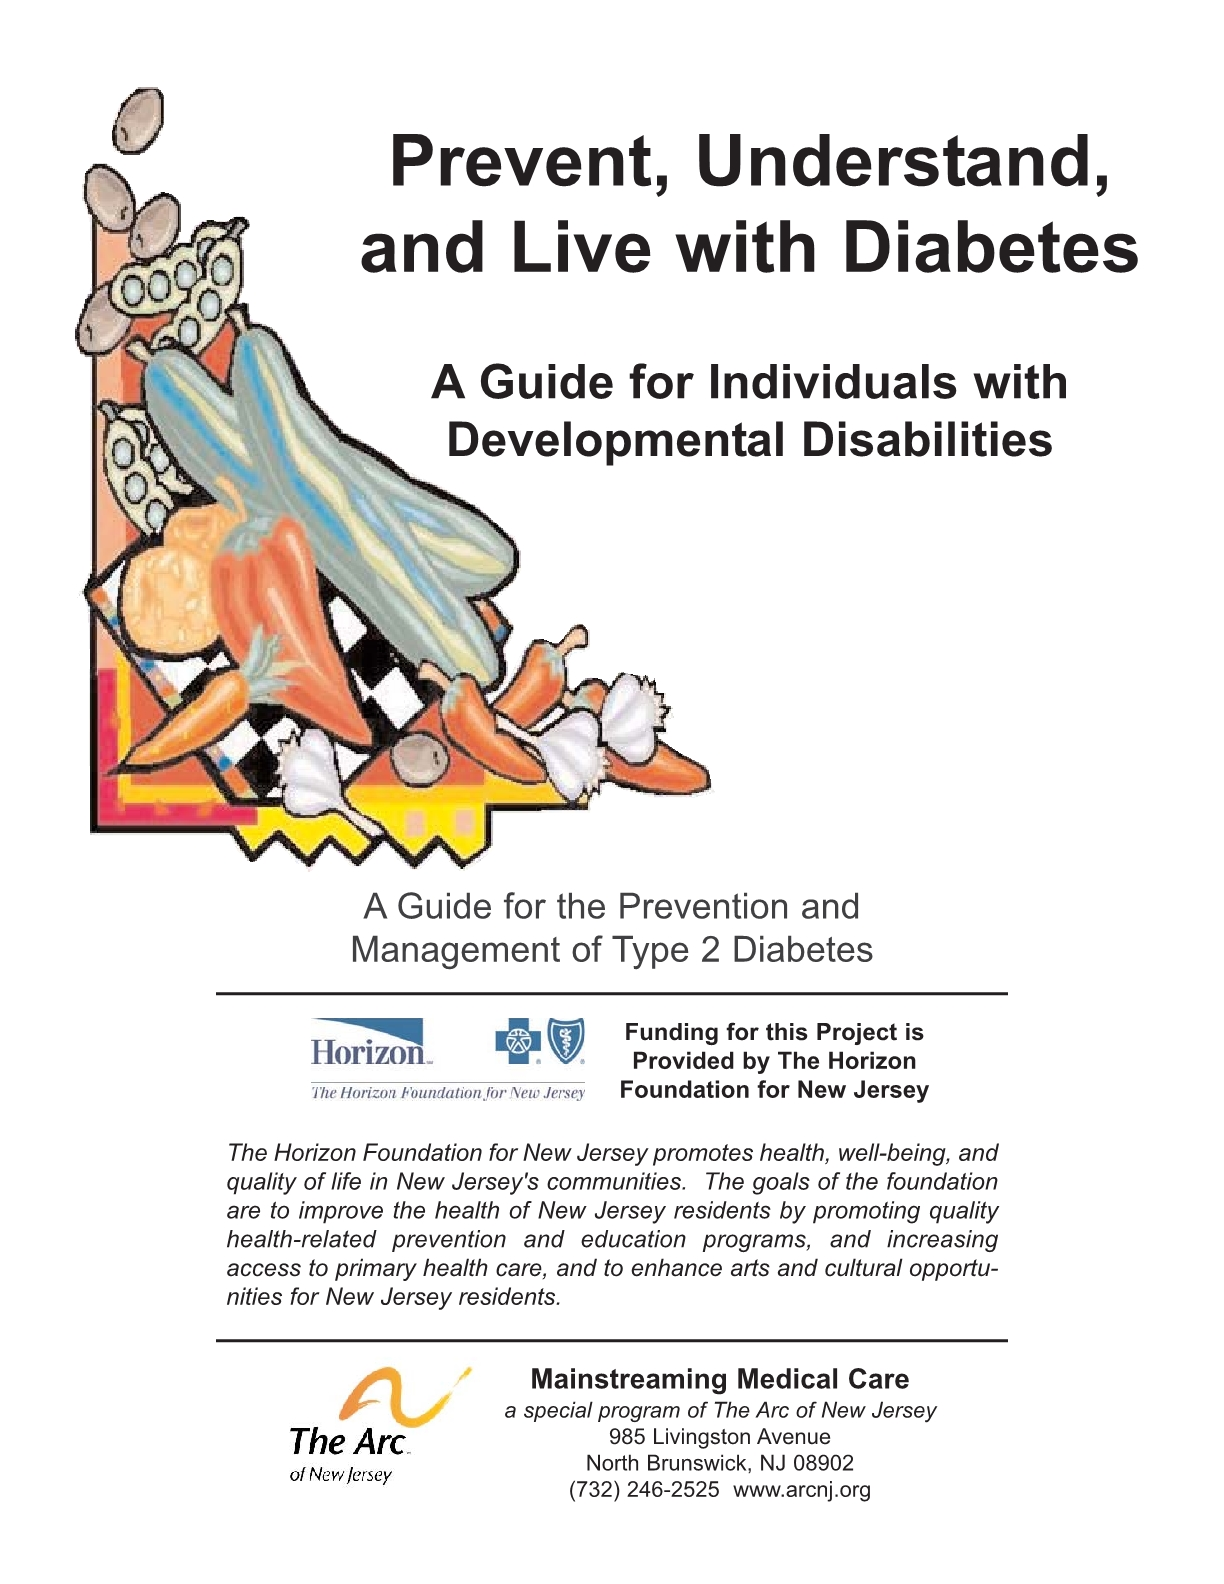 Prevent, Understand, and Live with Diabetes_A Guide for Individuals with Developmental Disabilities - English